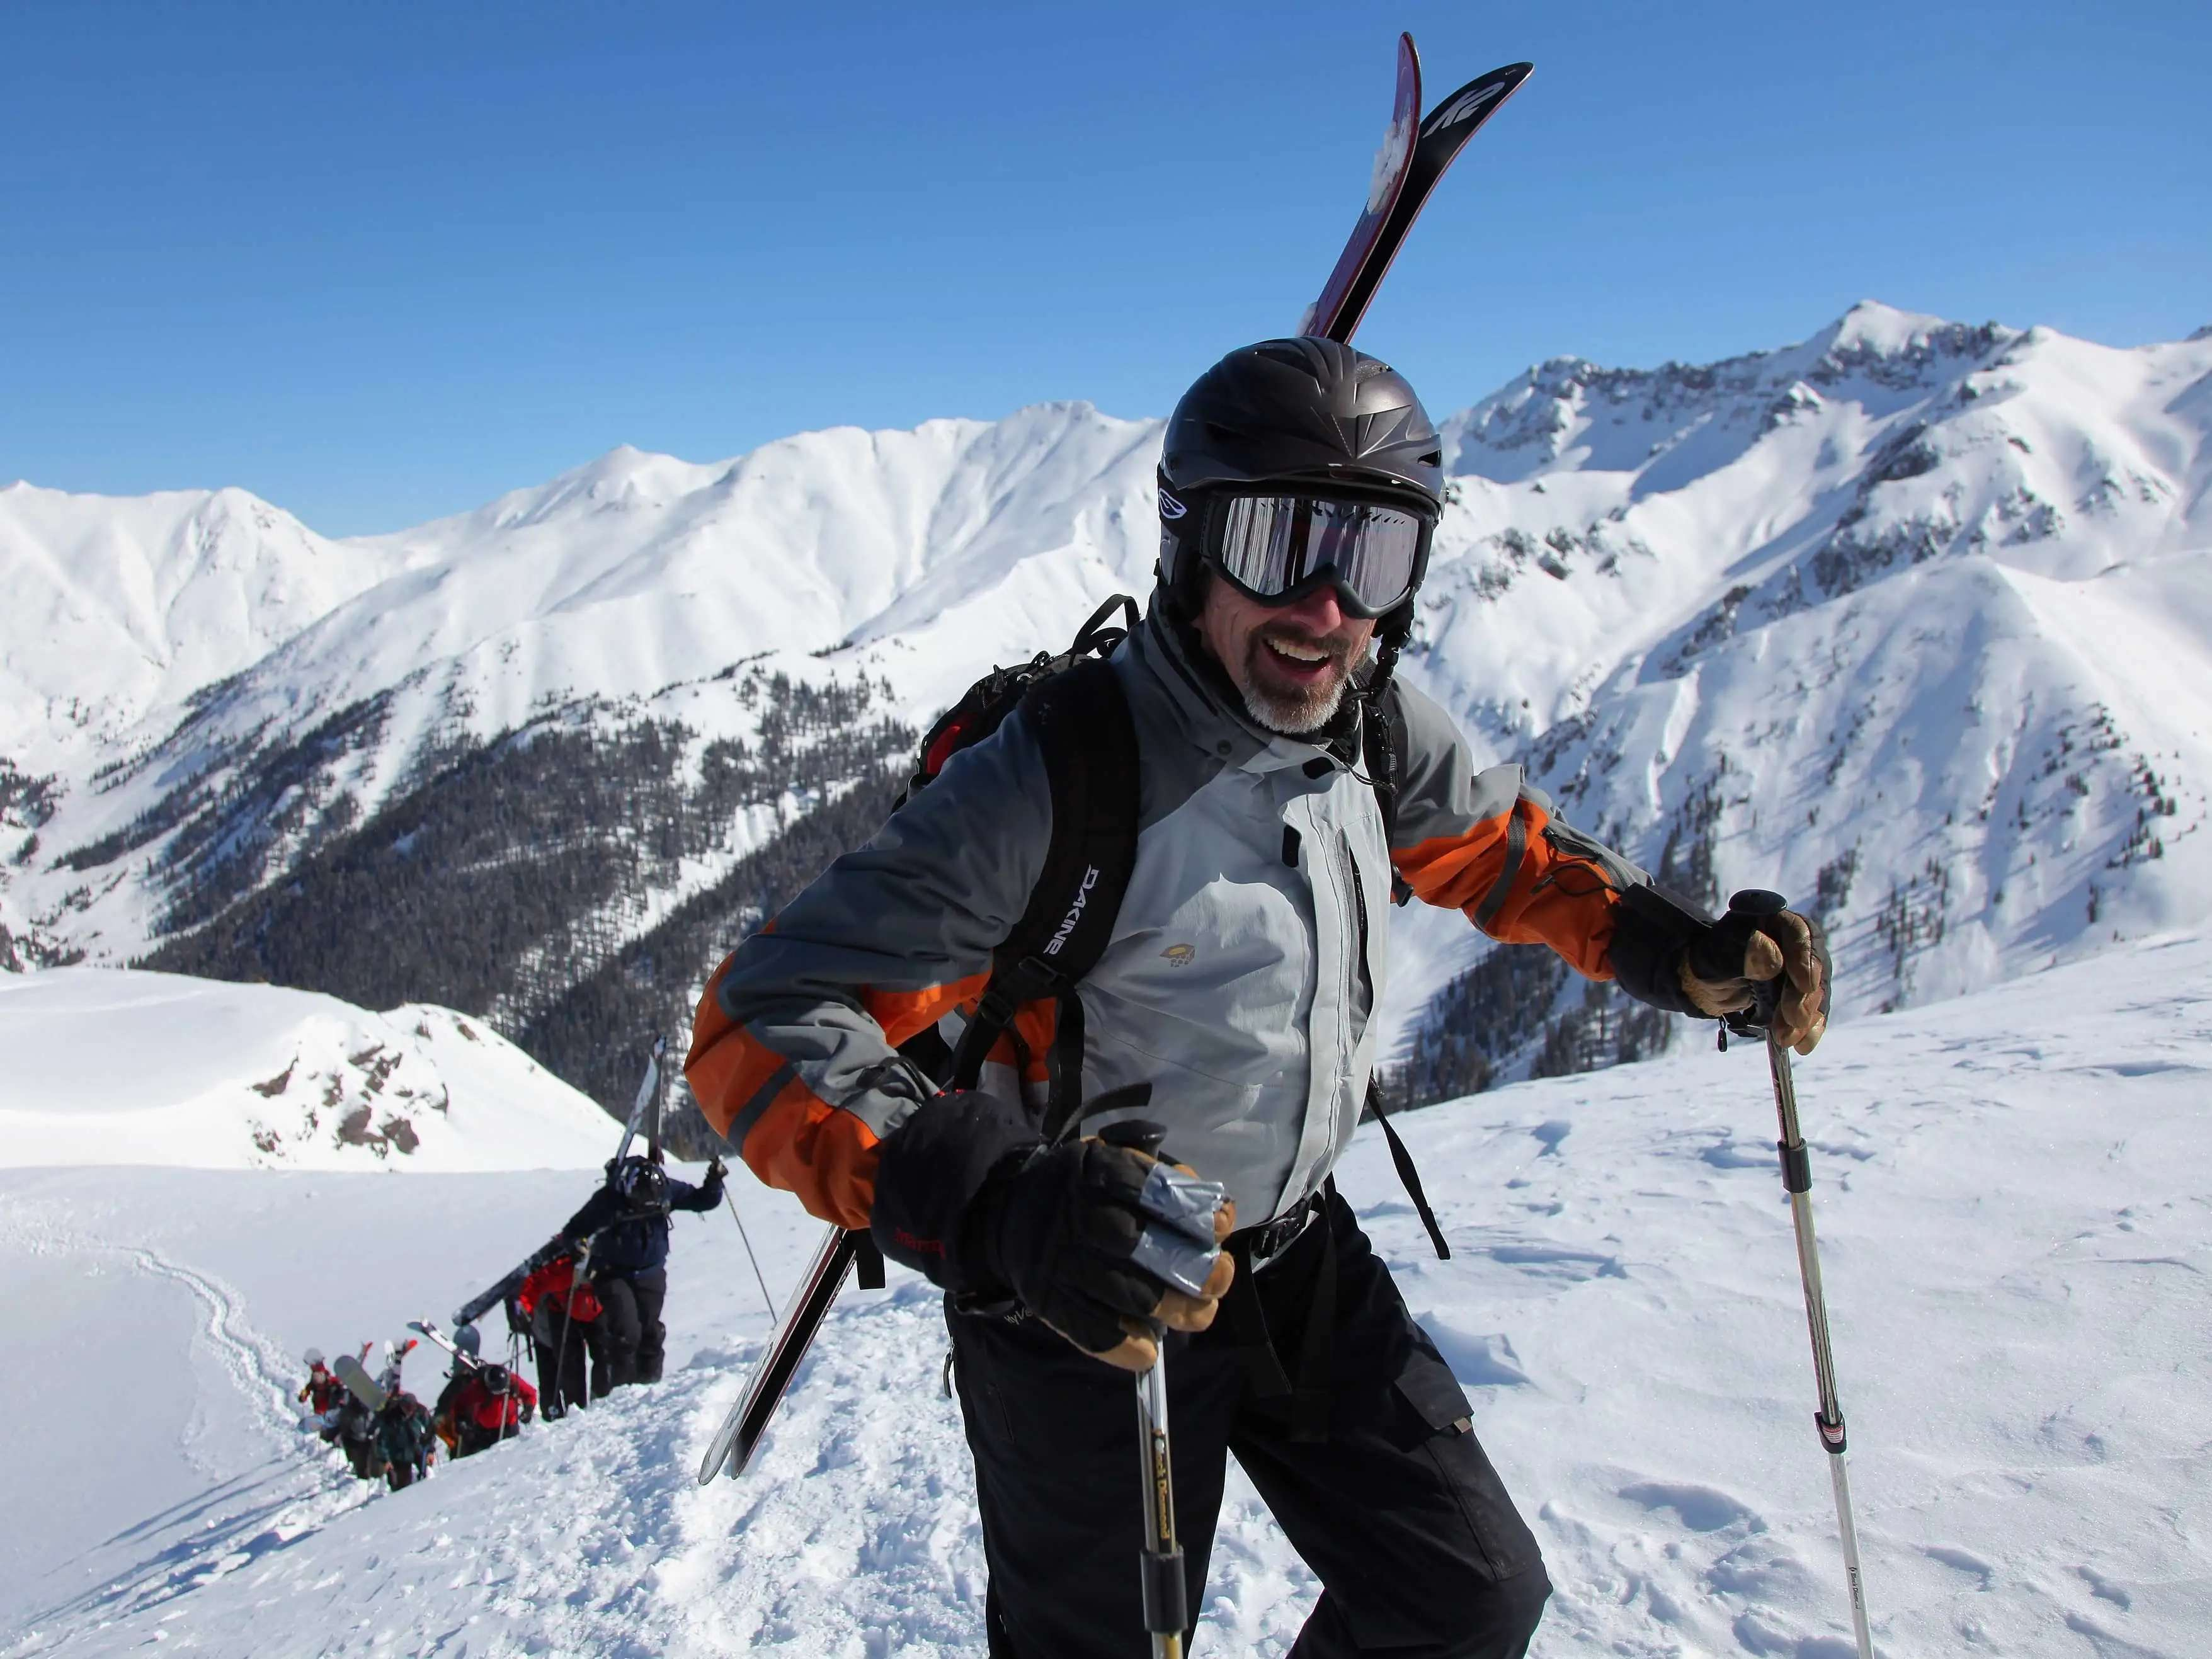 Q: How many skis are rented each year?